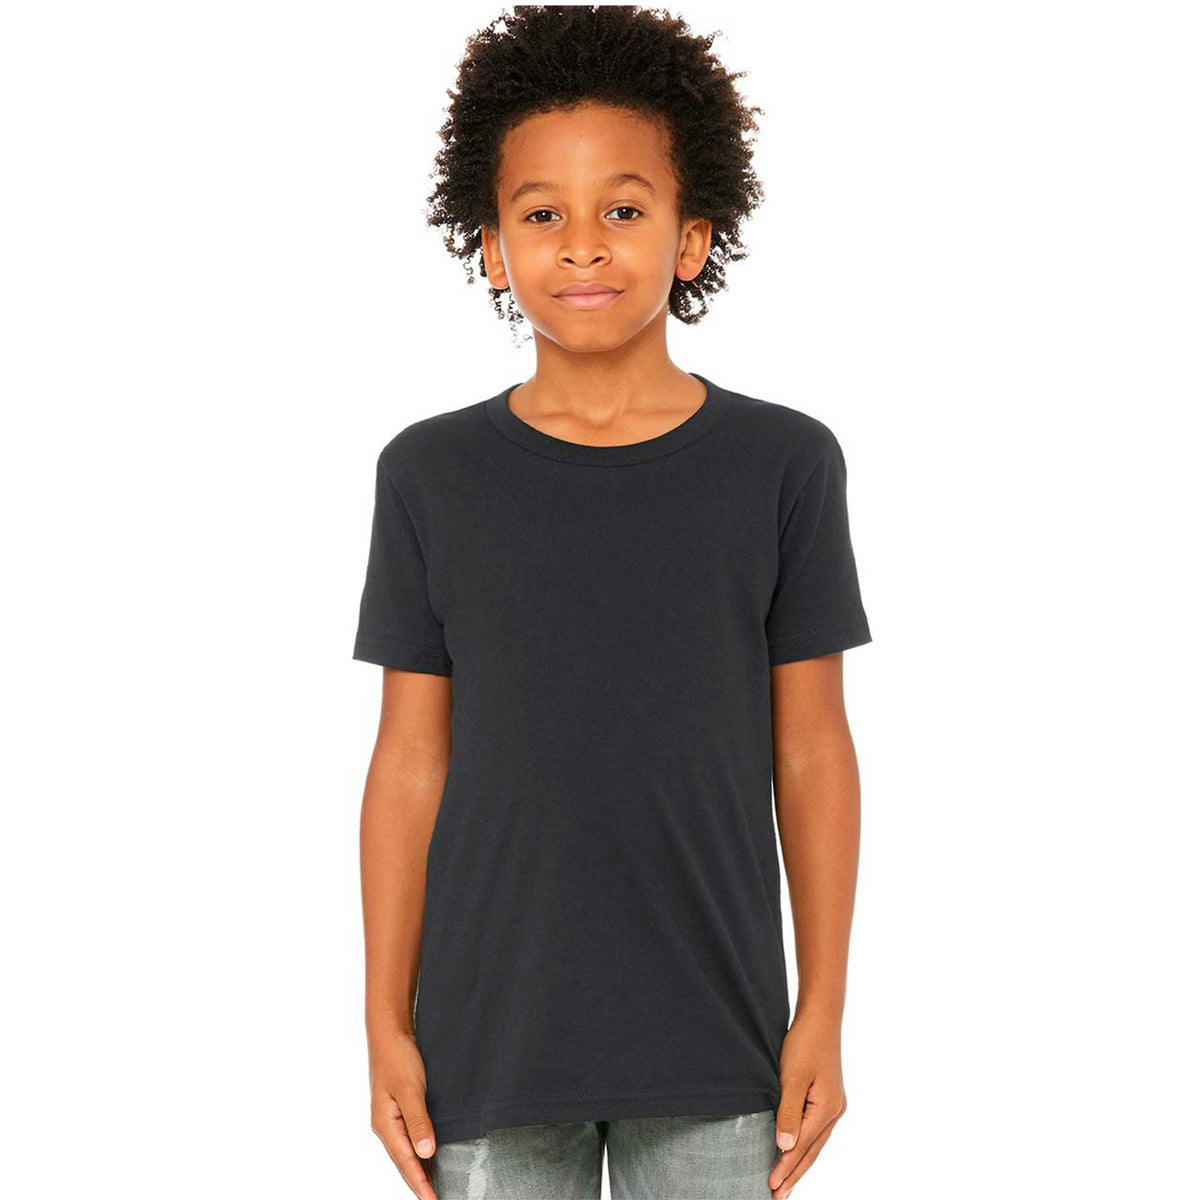 Bella + Canvas 3001Y Premium Youth T-Shirt